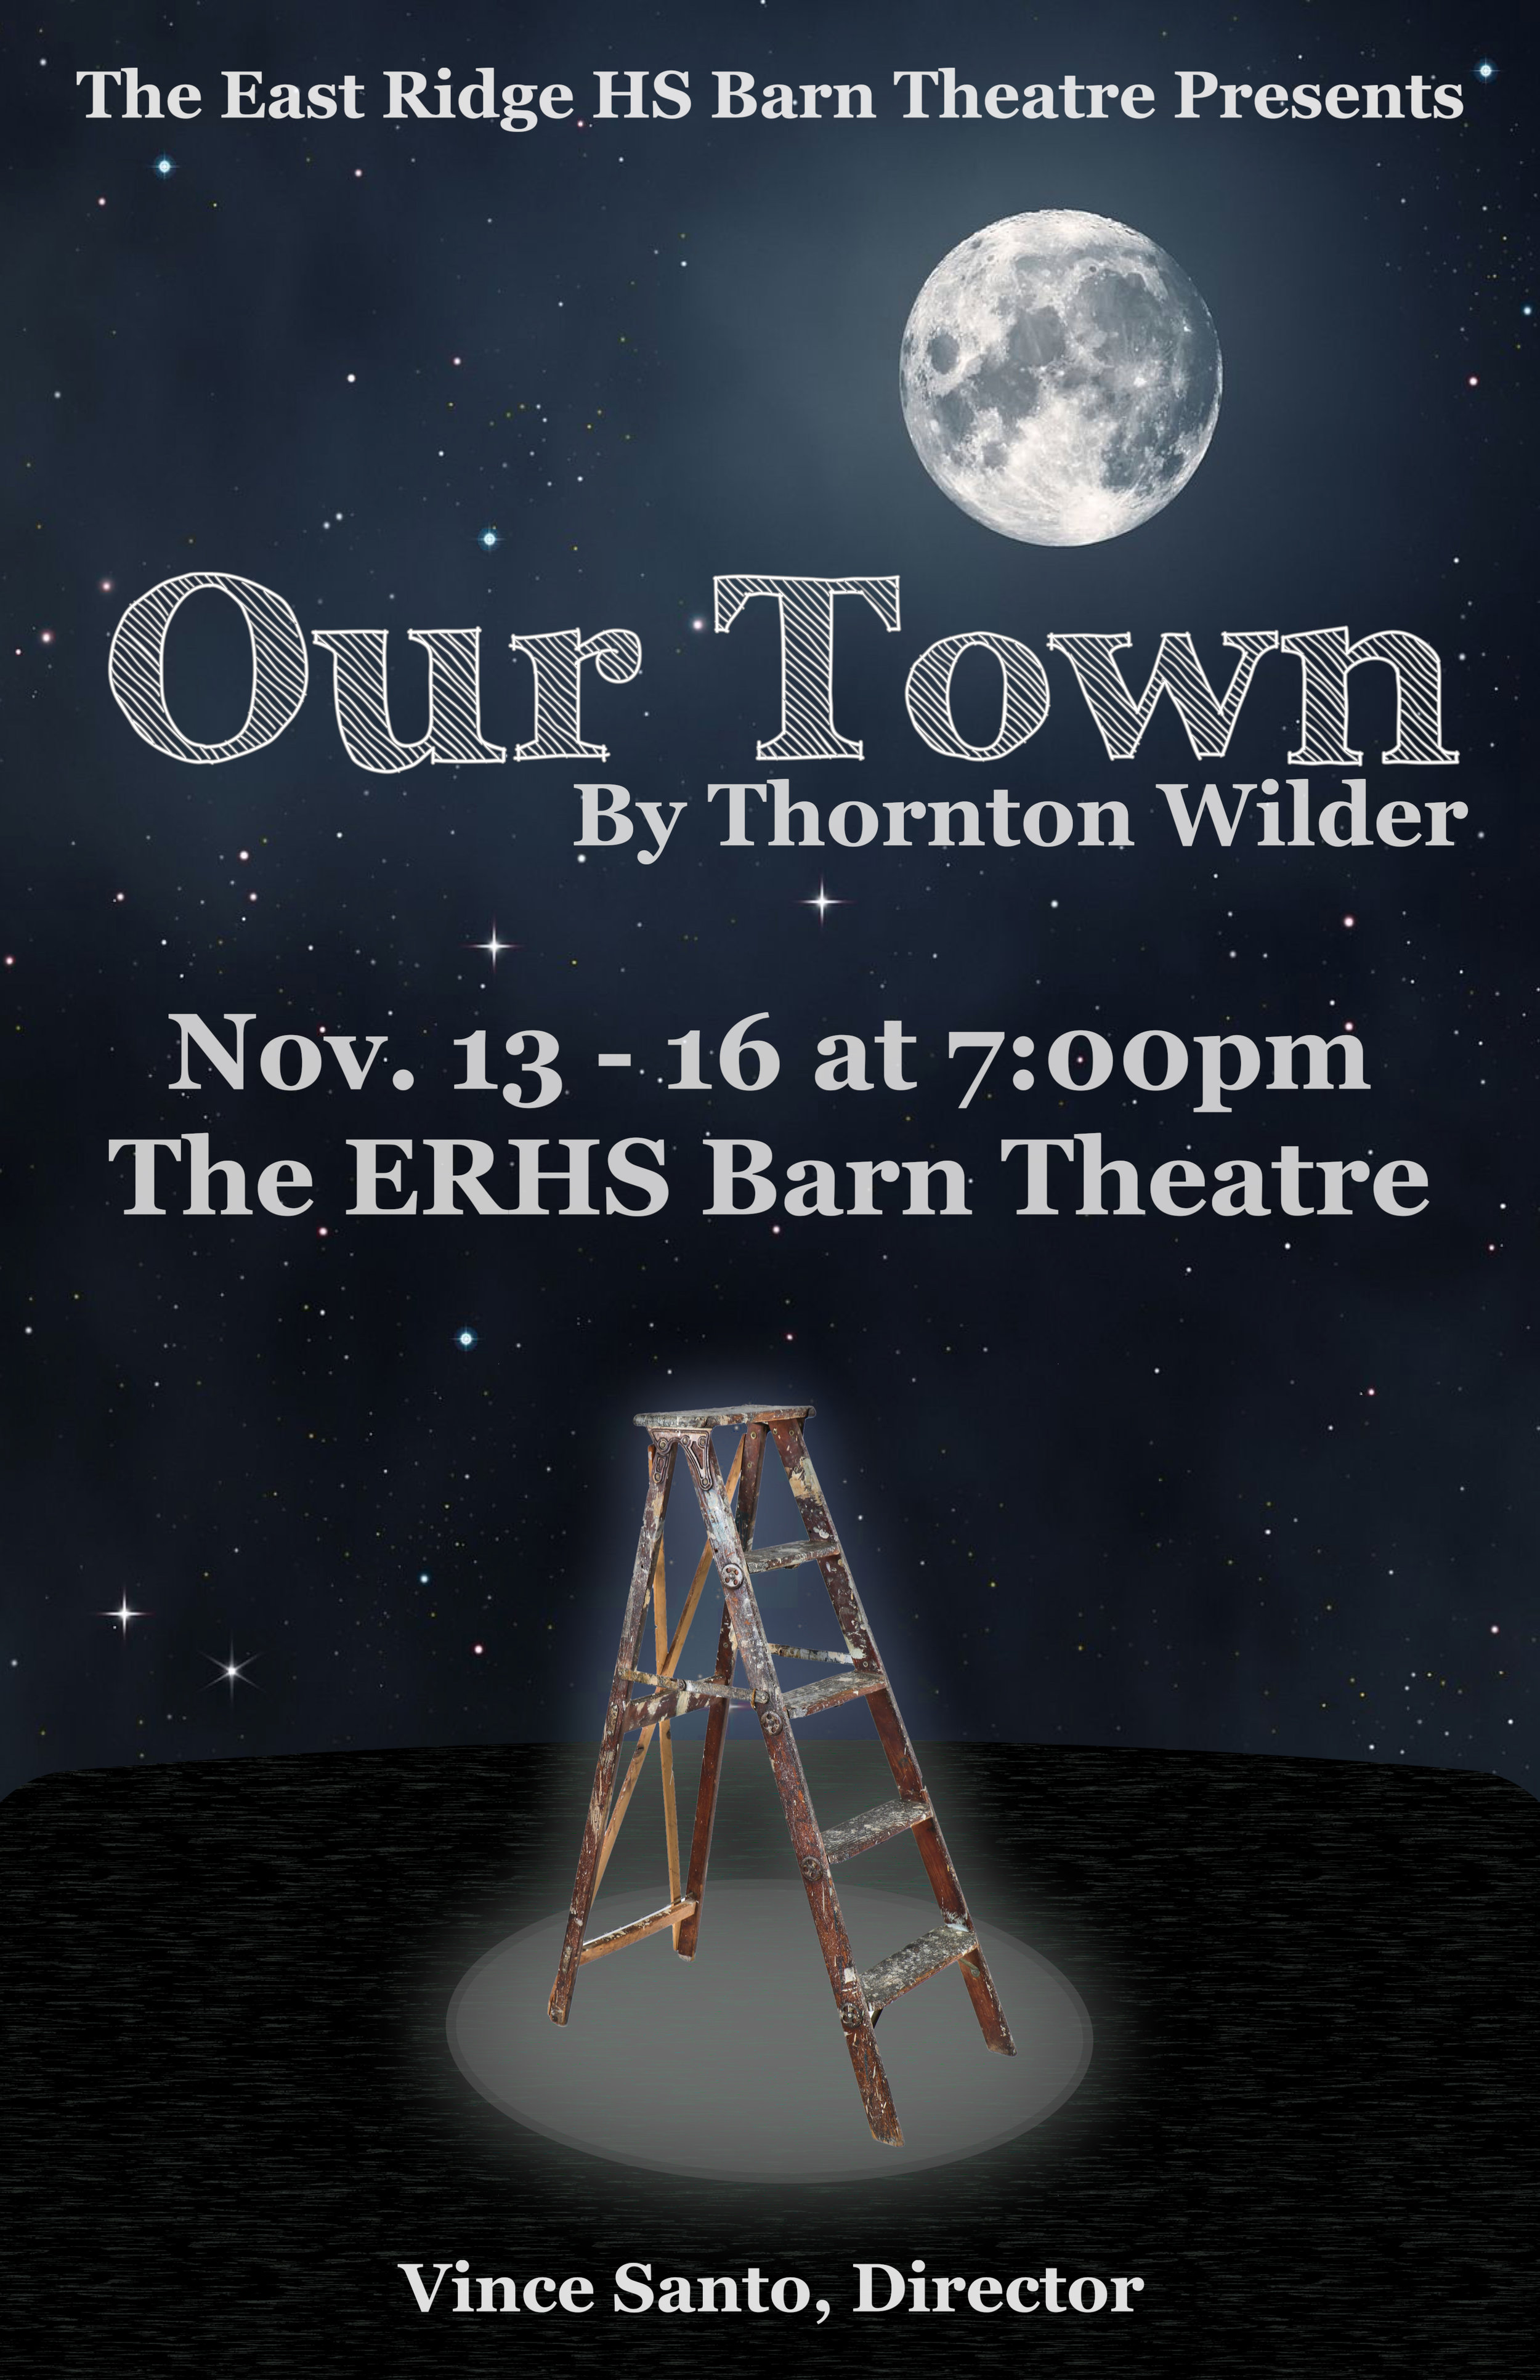 Our Town Cover Poster.jpg